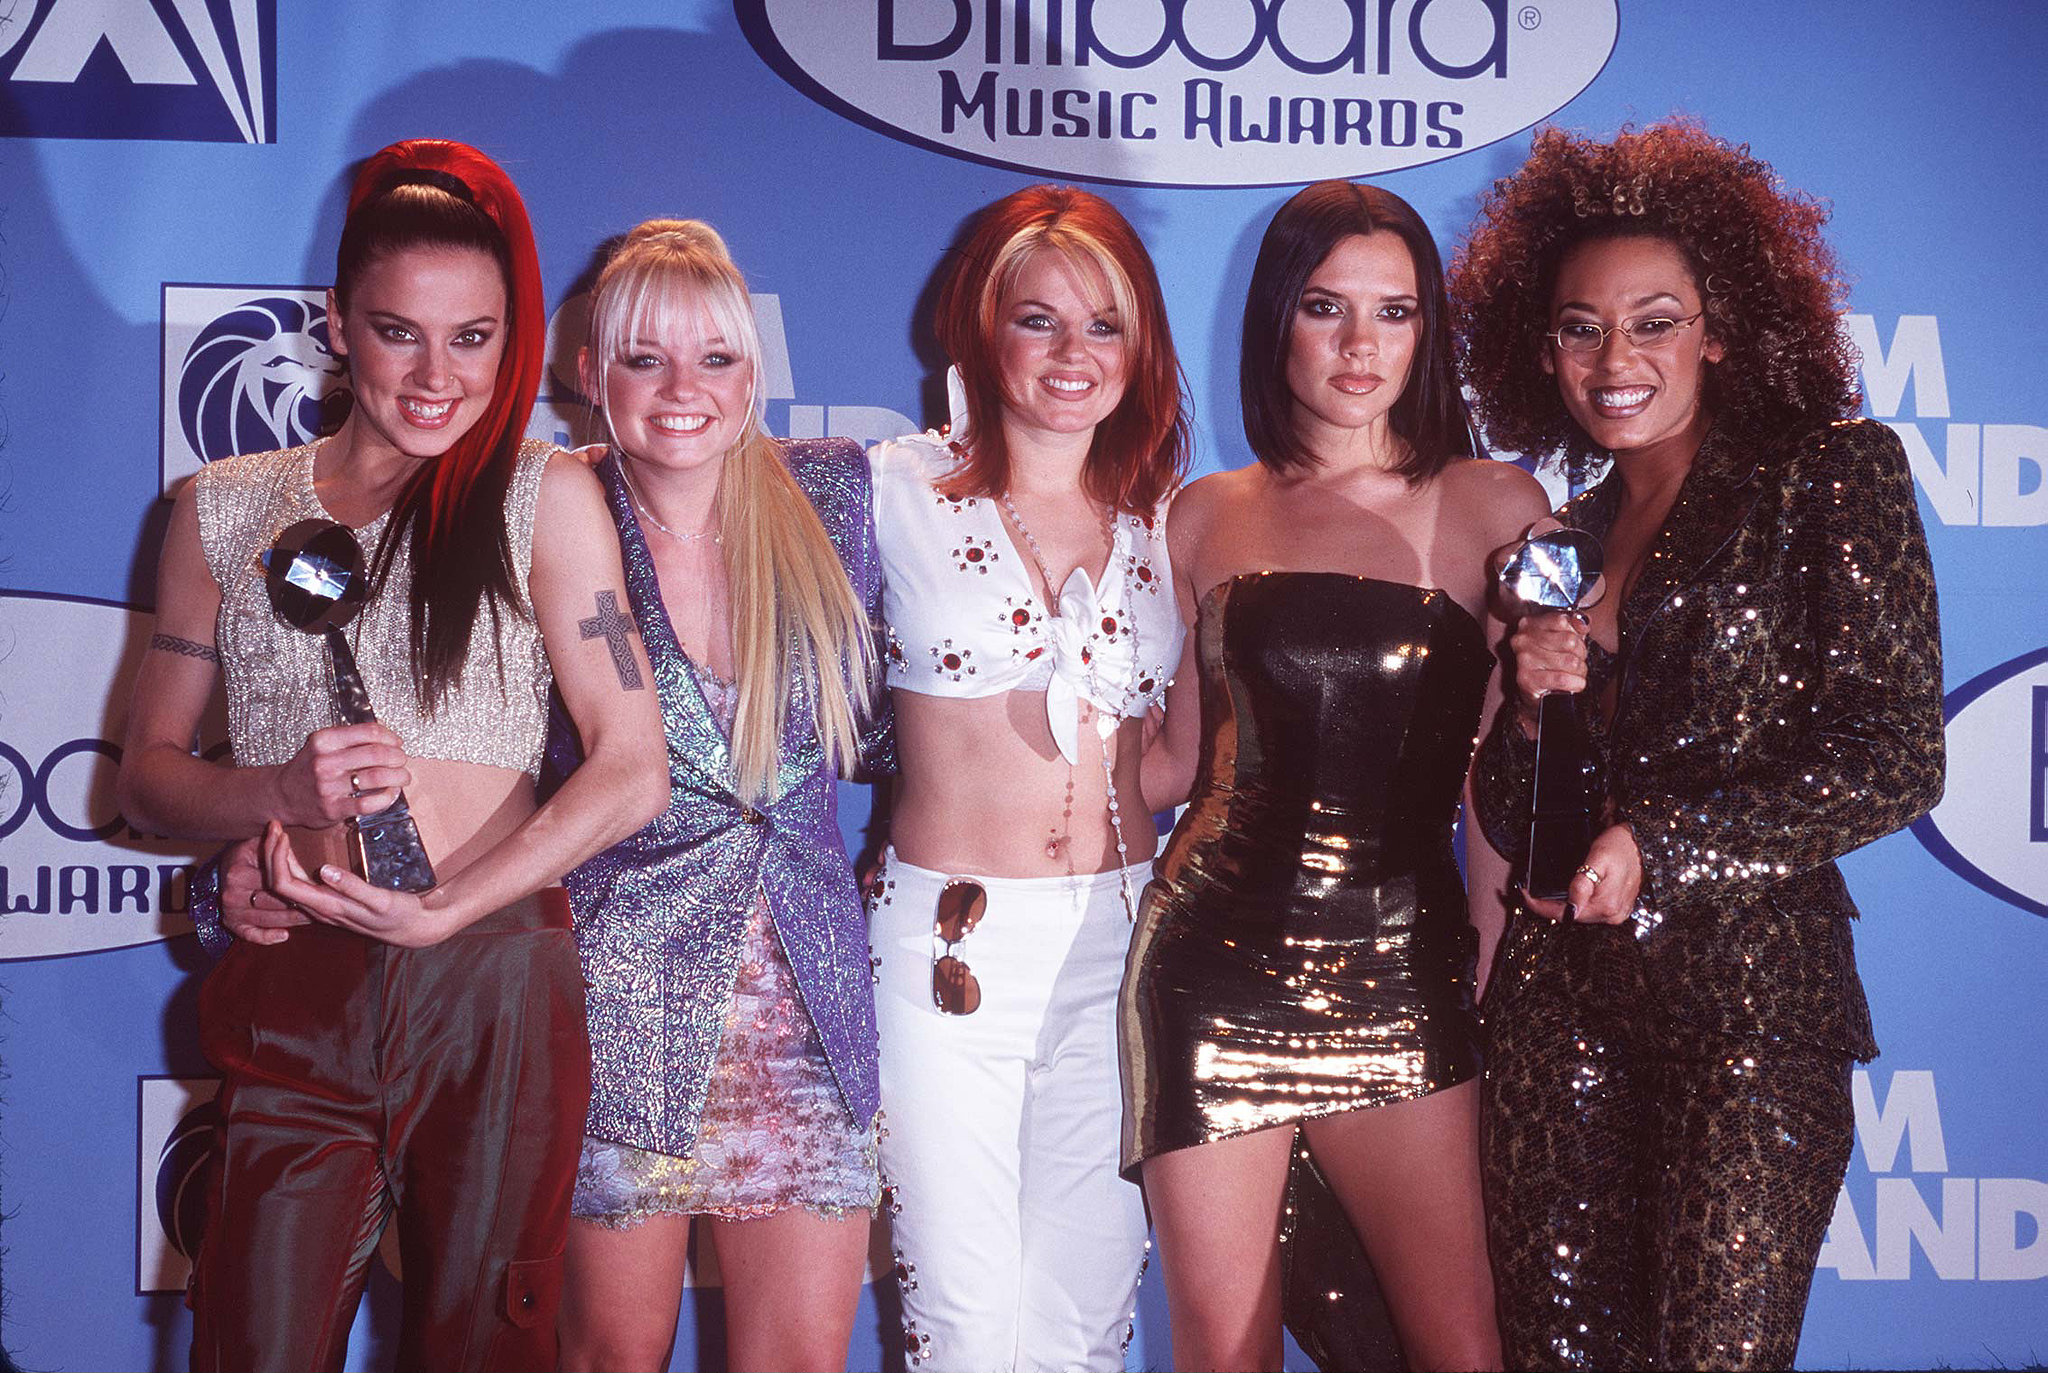 a995aa37bd66 December 10-11th 1997 - Spice Girls arrive in Manaus